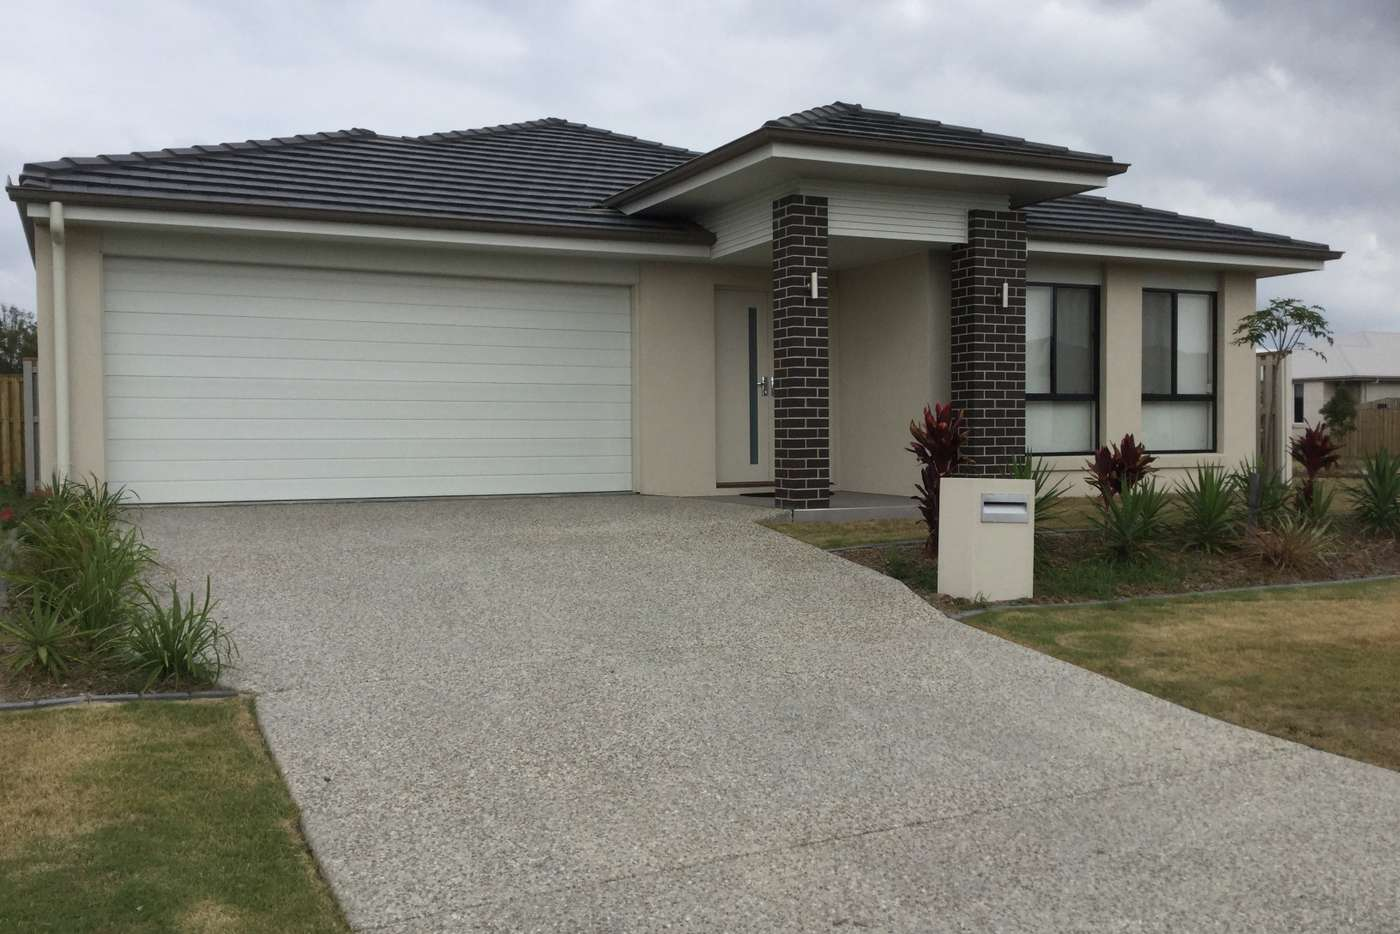 Main view of Homely house listing, 33 Emerald Drive, Helensvale QLD 4212